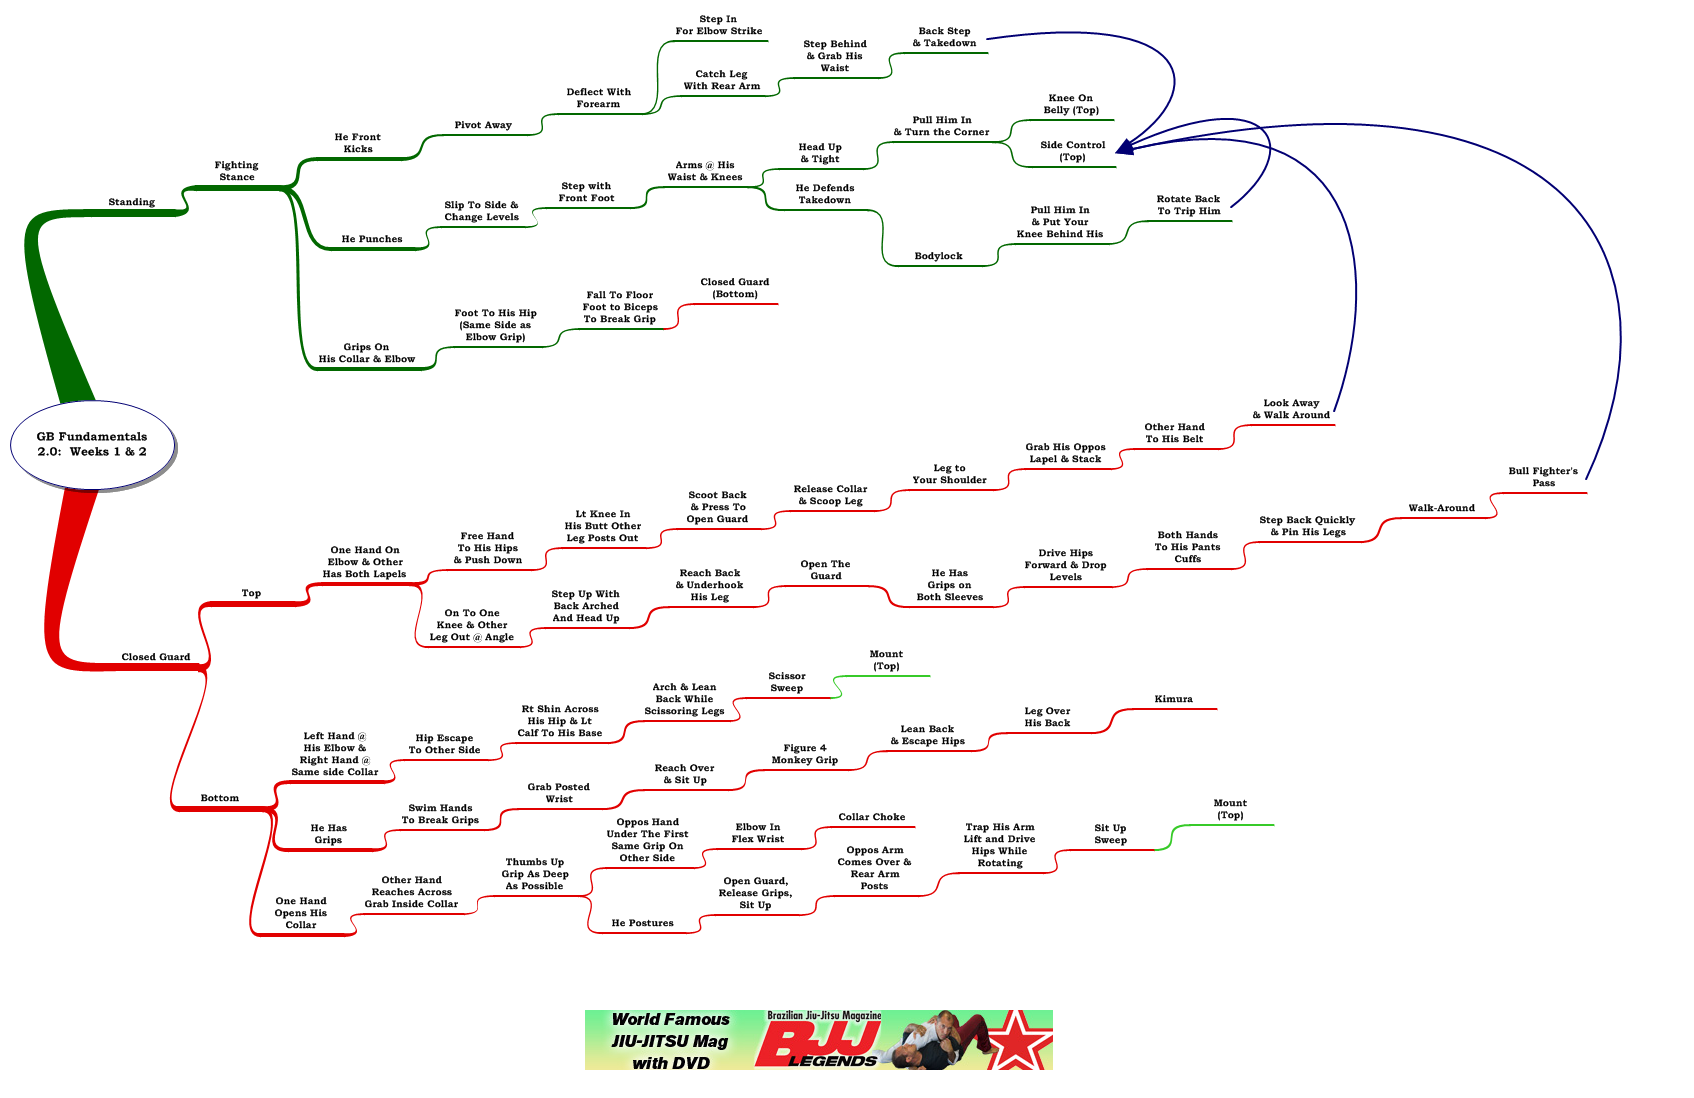 Review and Mindmap: Gracie Barra Fundamentals 2.0 Weeks 1 & 2